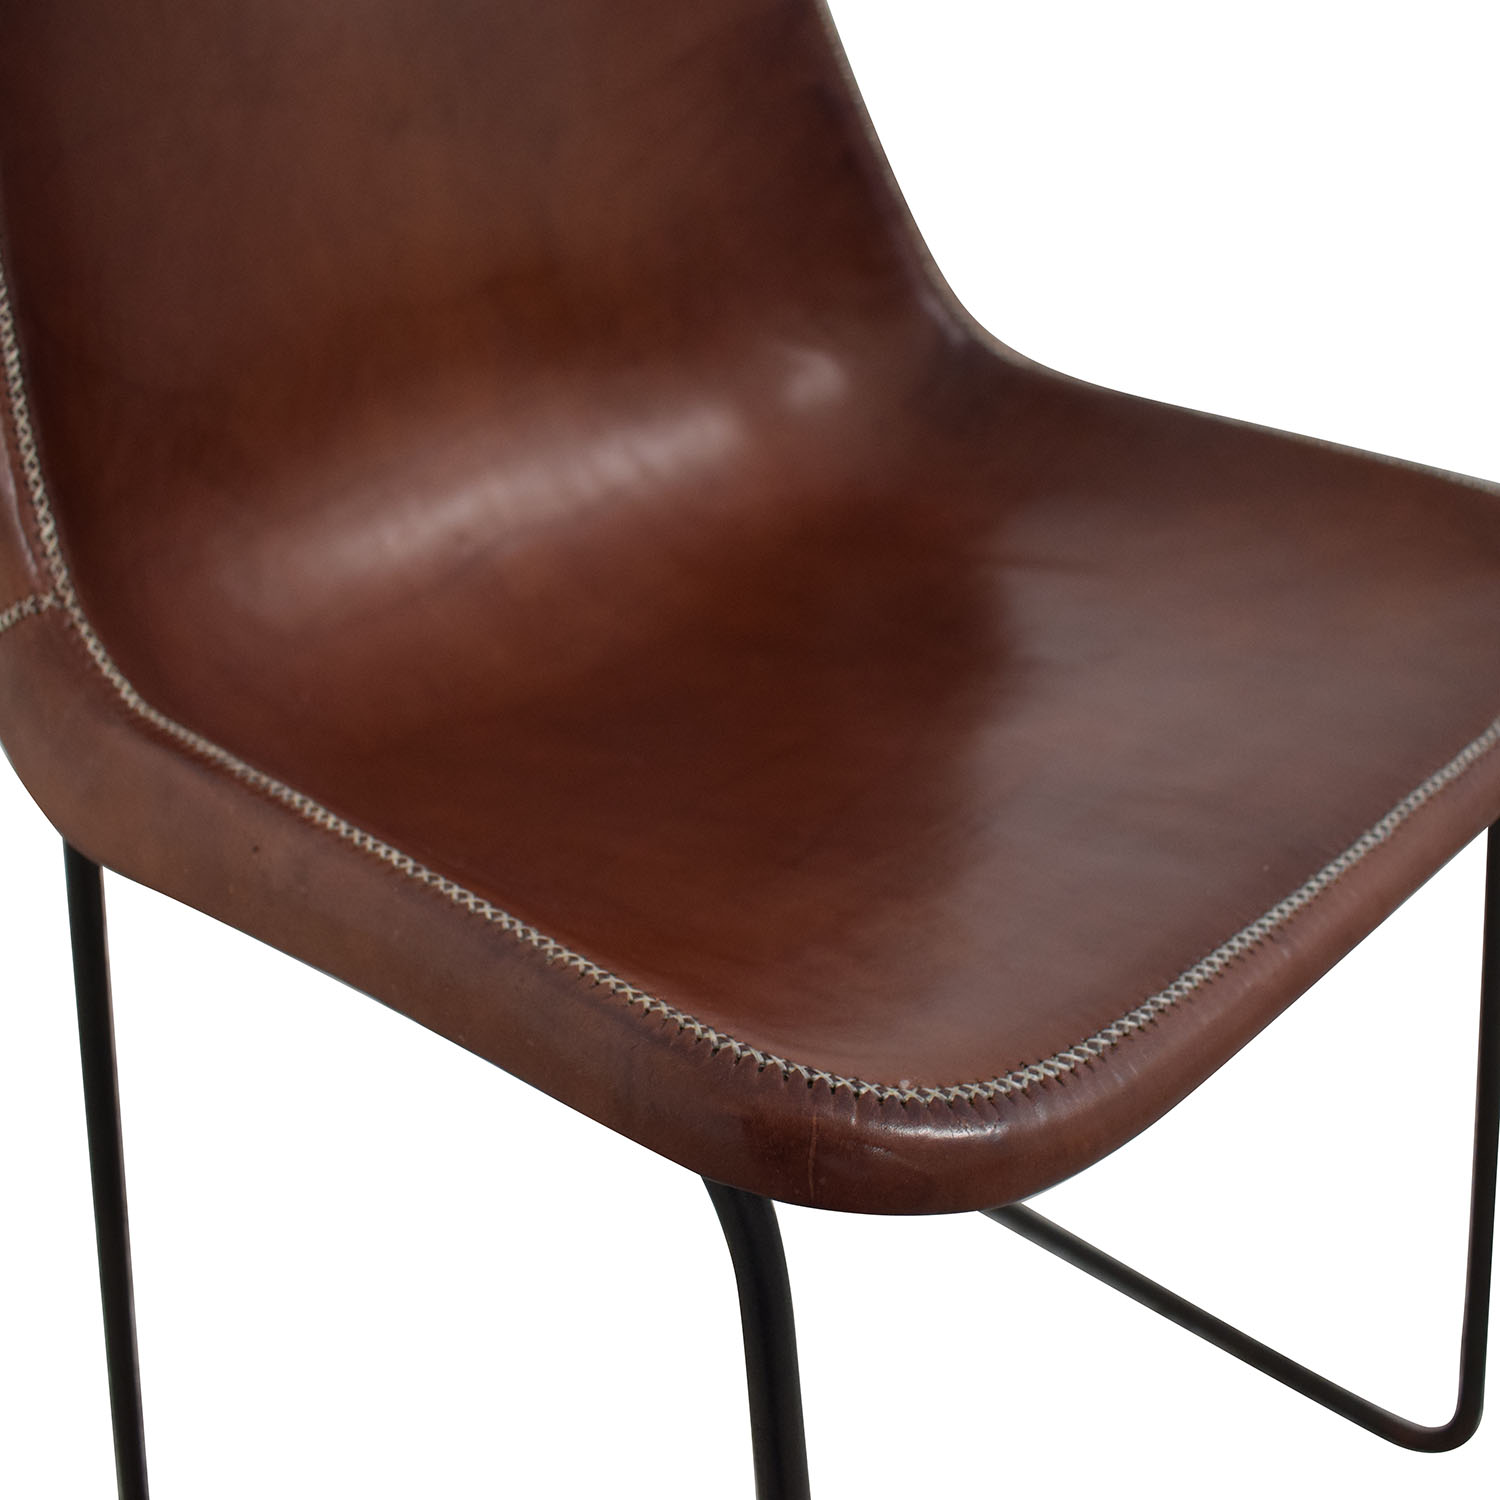 ABC Carpet & Home ABC Carpet & Home Giron Brown Leather Chair Dining Chairs